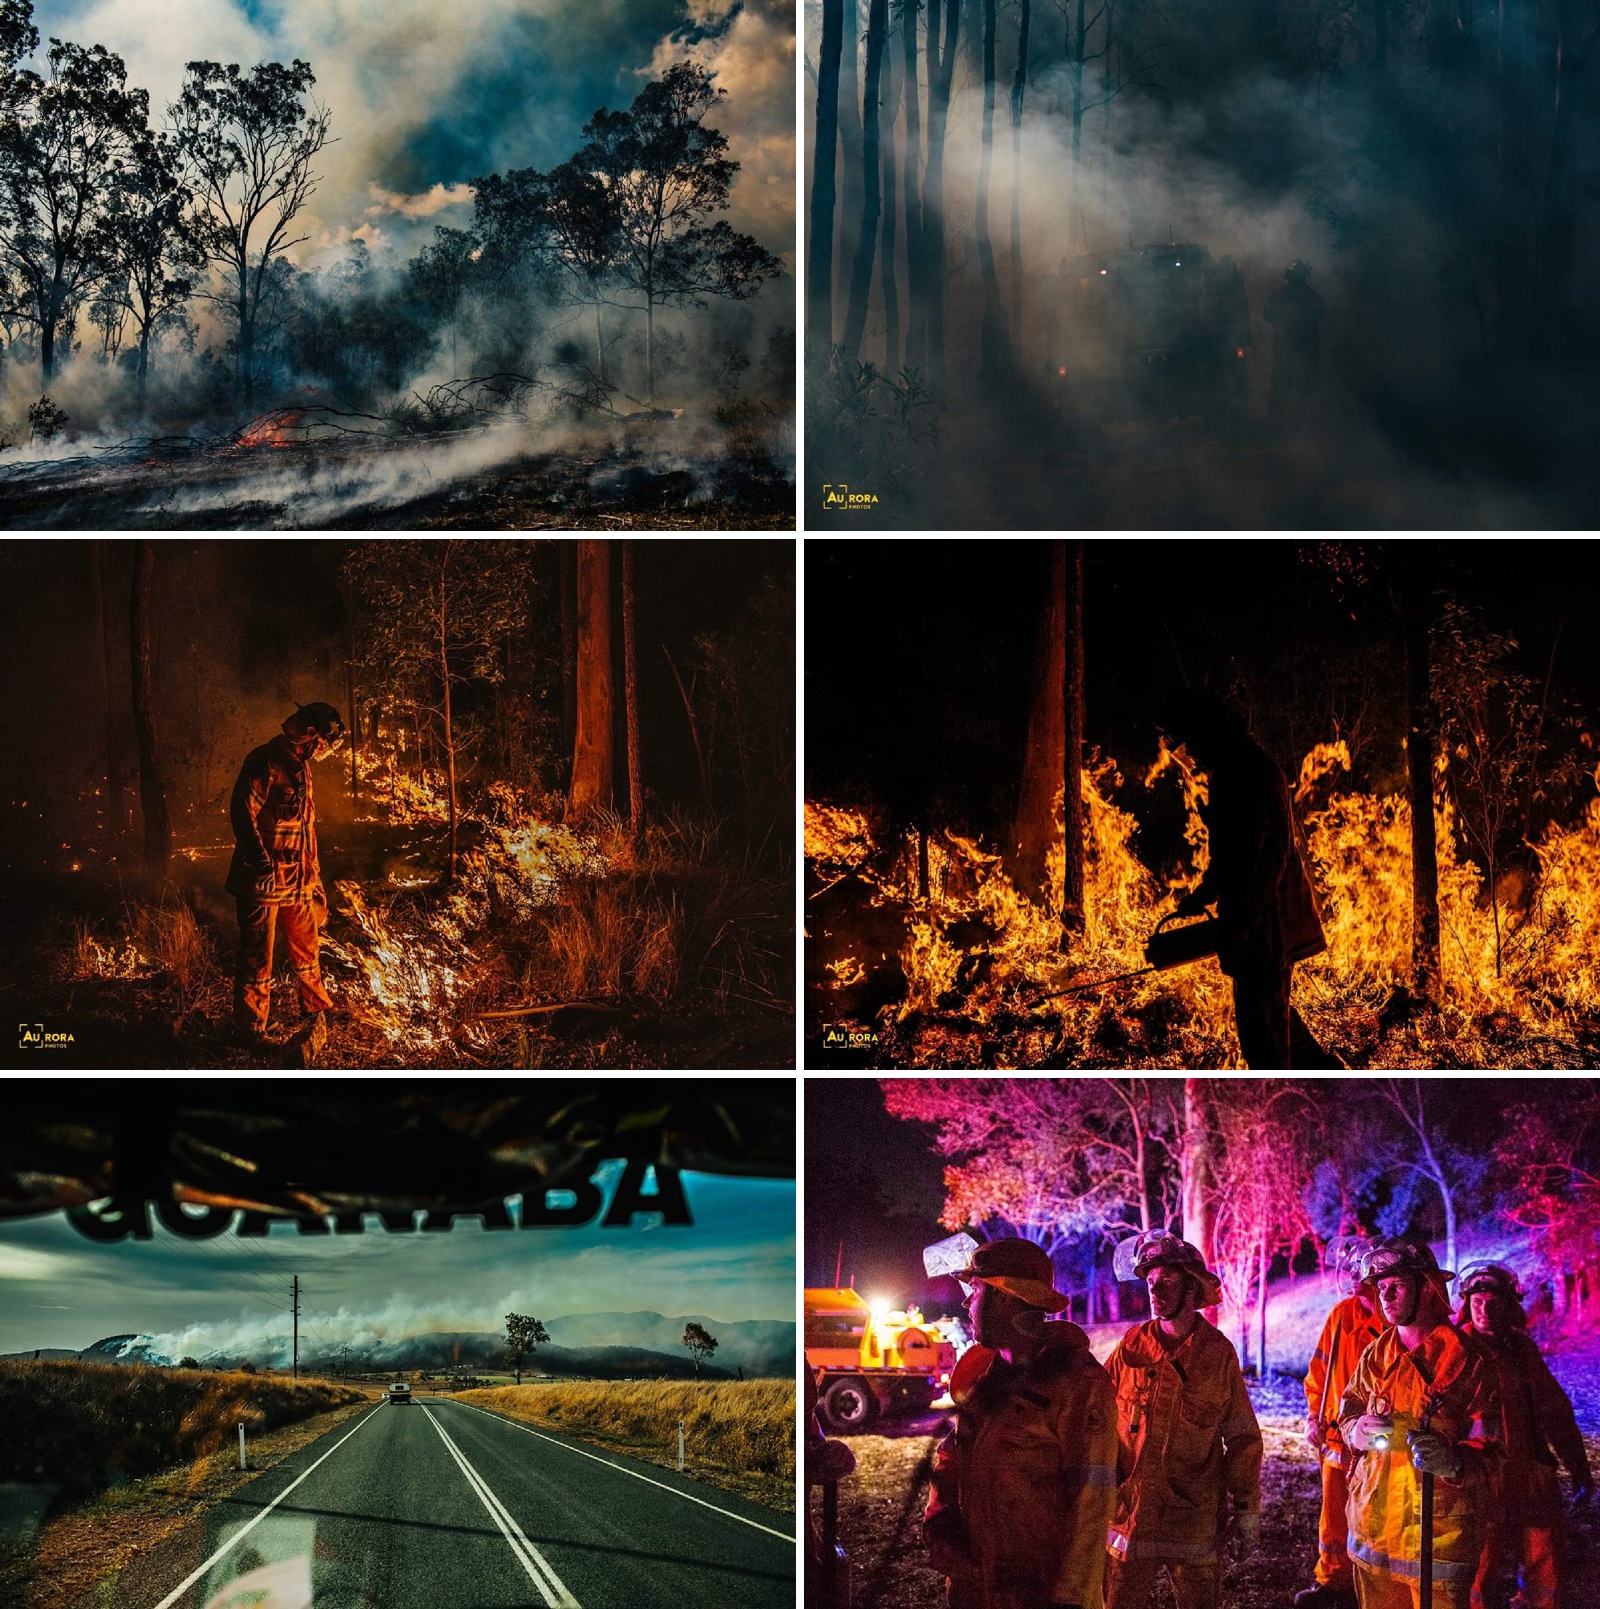 Colour pictures of Cam Neville's firefighting pictures used in the Breathe Pictures podcast about photography